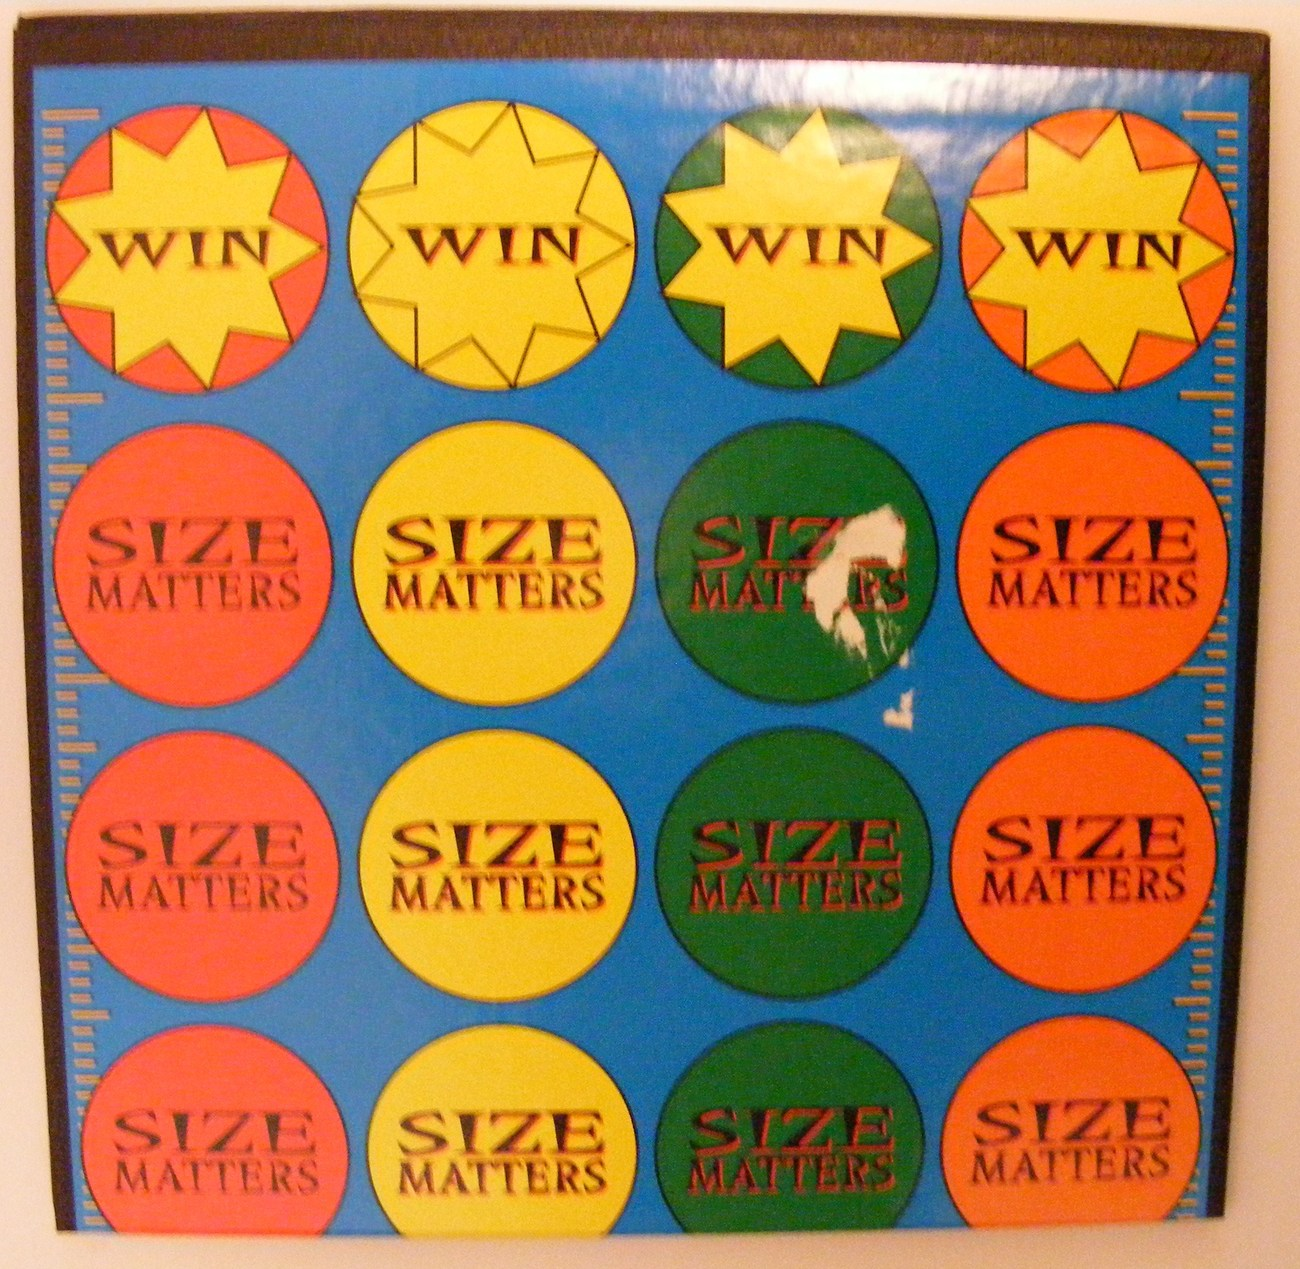 SIZE MATTERS Fun Family Trivia Board Game